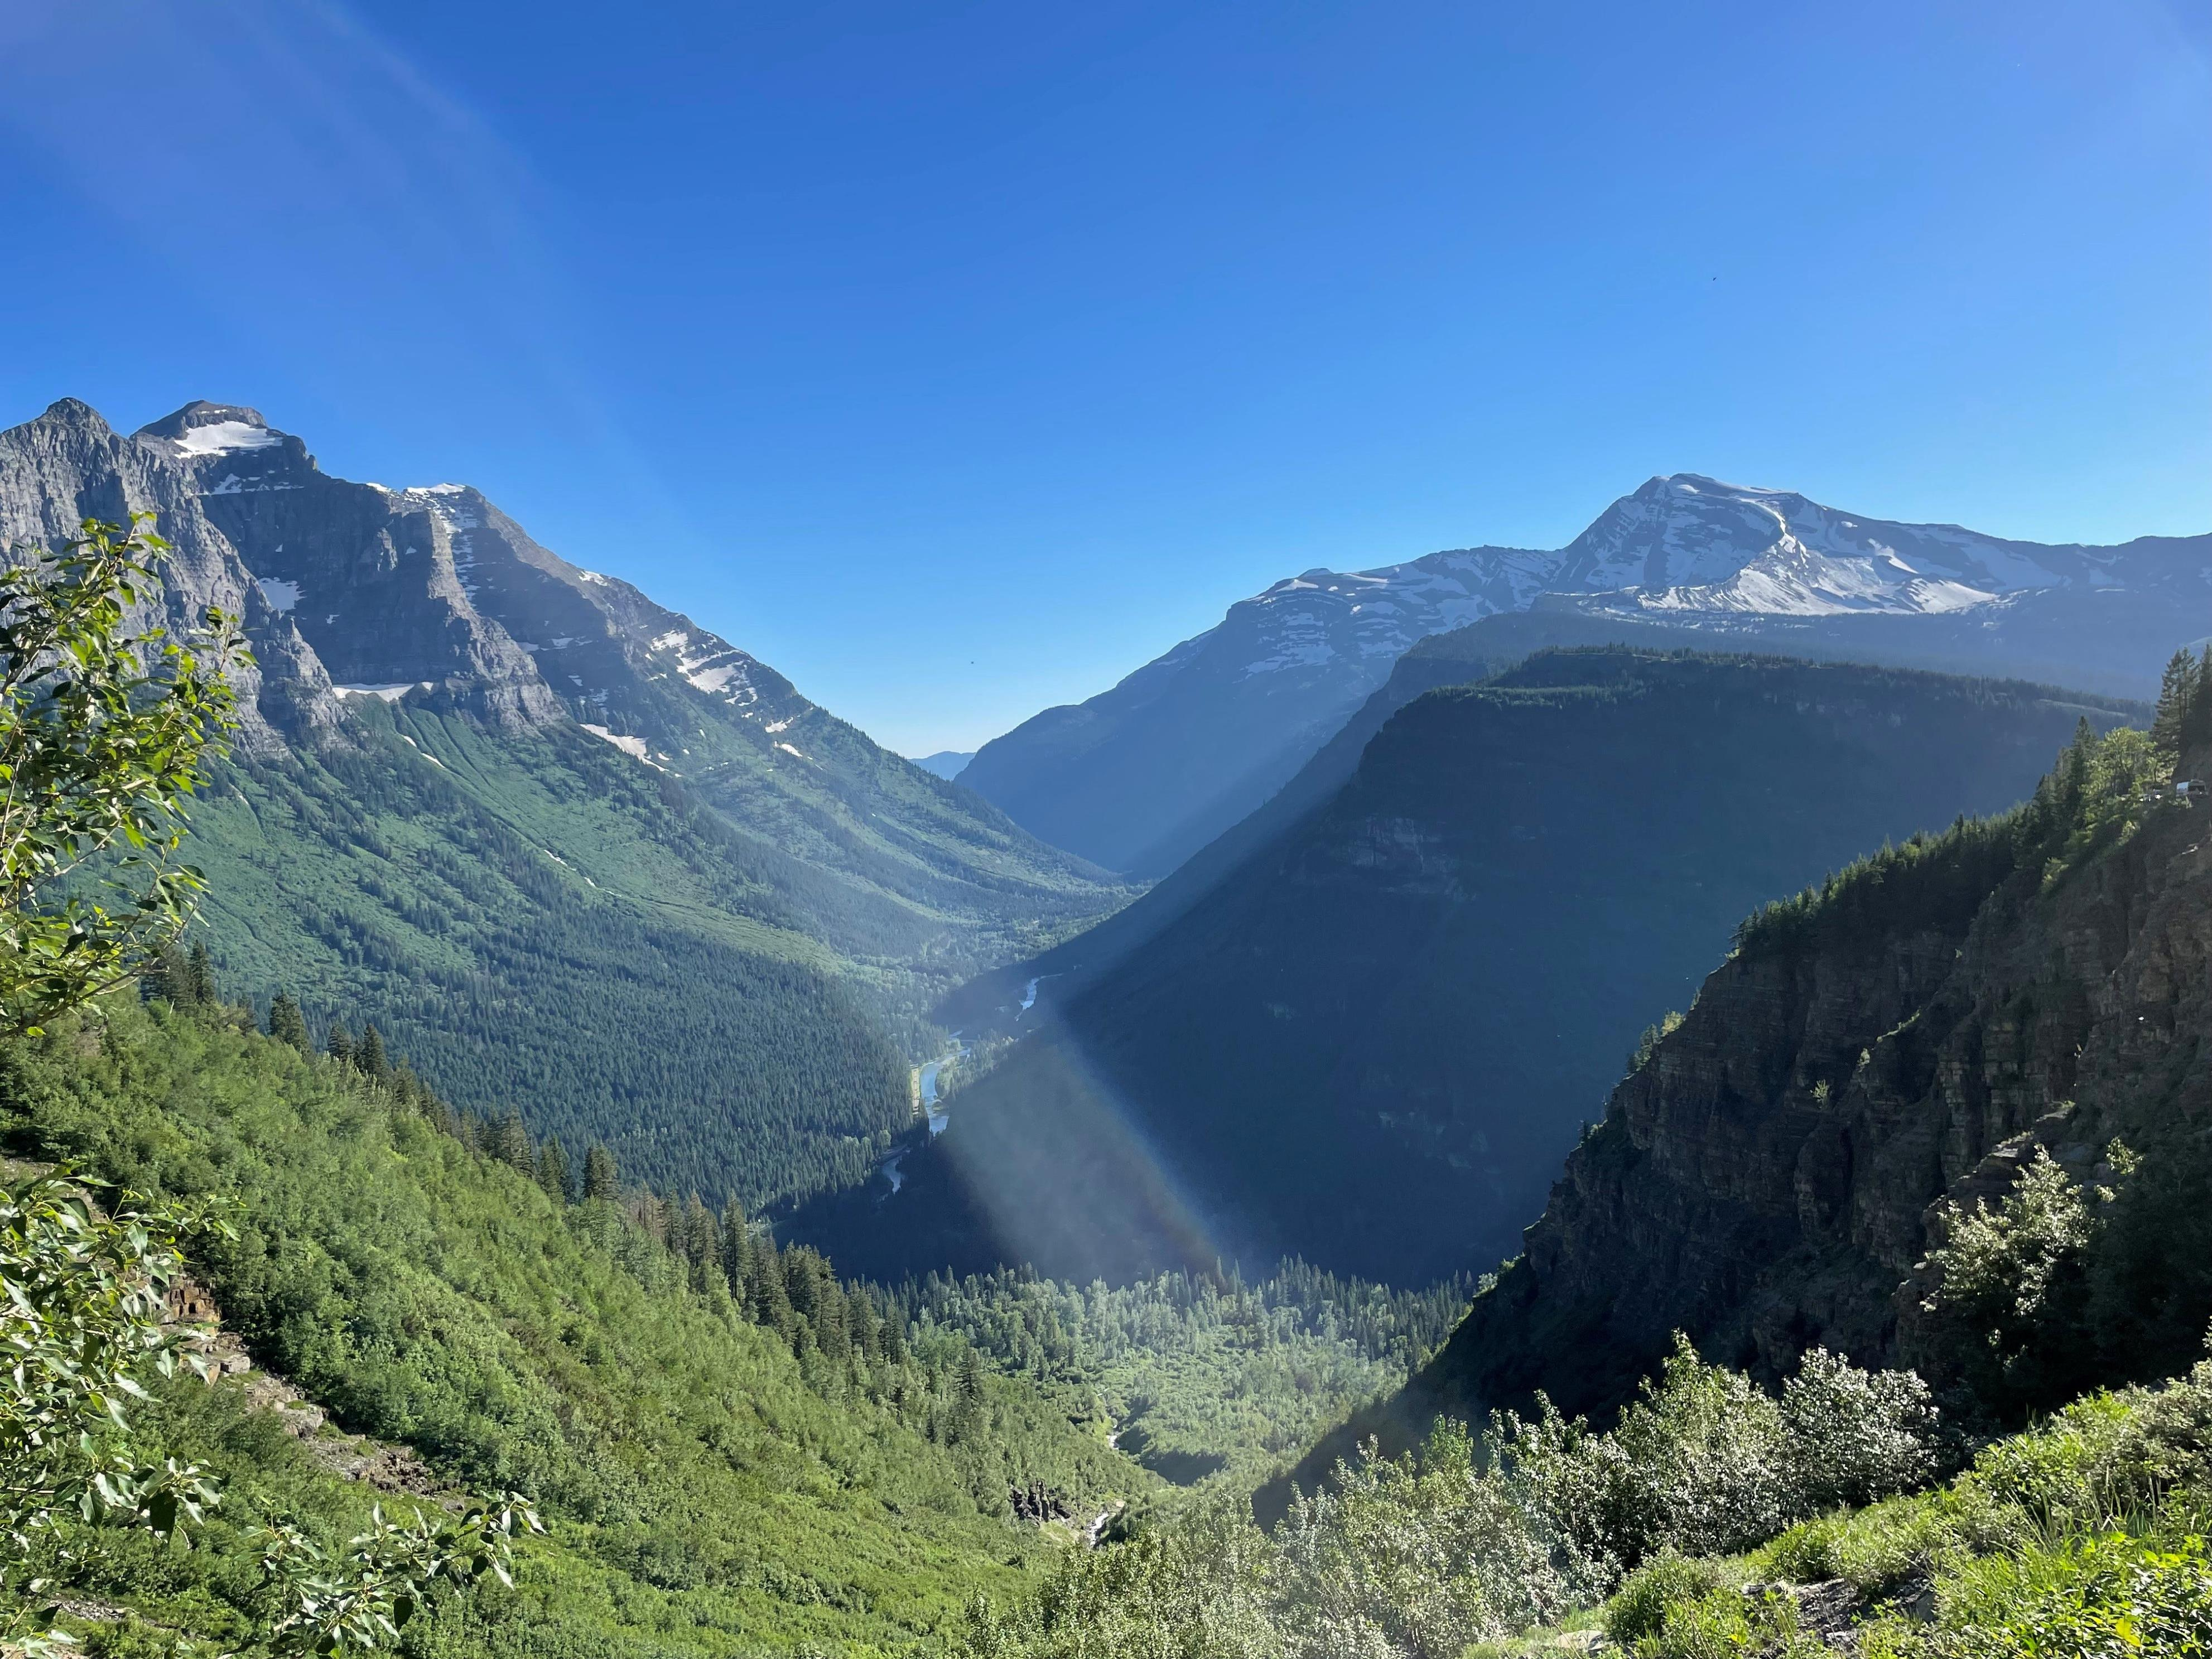 Slide 10 of 10: Like many national parks, Glacier National Park has seen an uptick in visitors. To ease congestion along the iconic Going-to-the-Sun road, the park instituted a reservation system for the 2021 season.